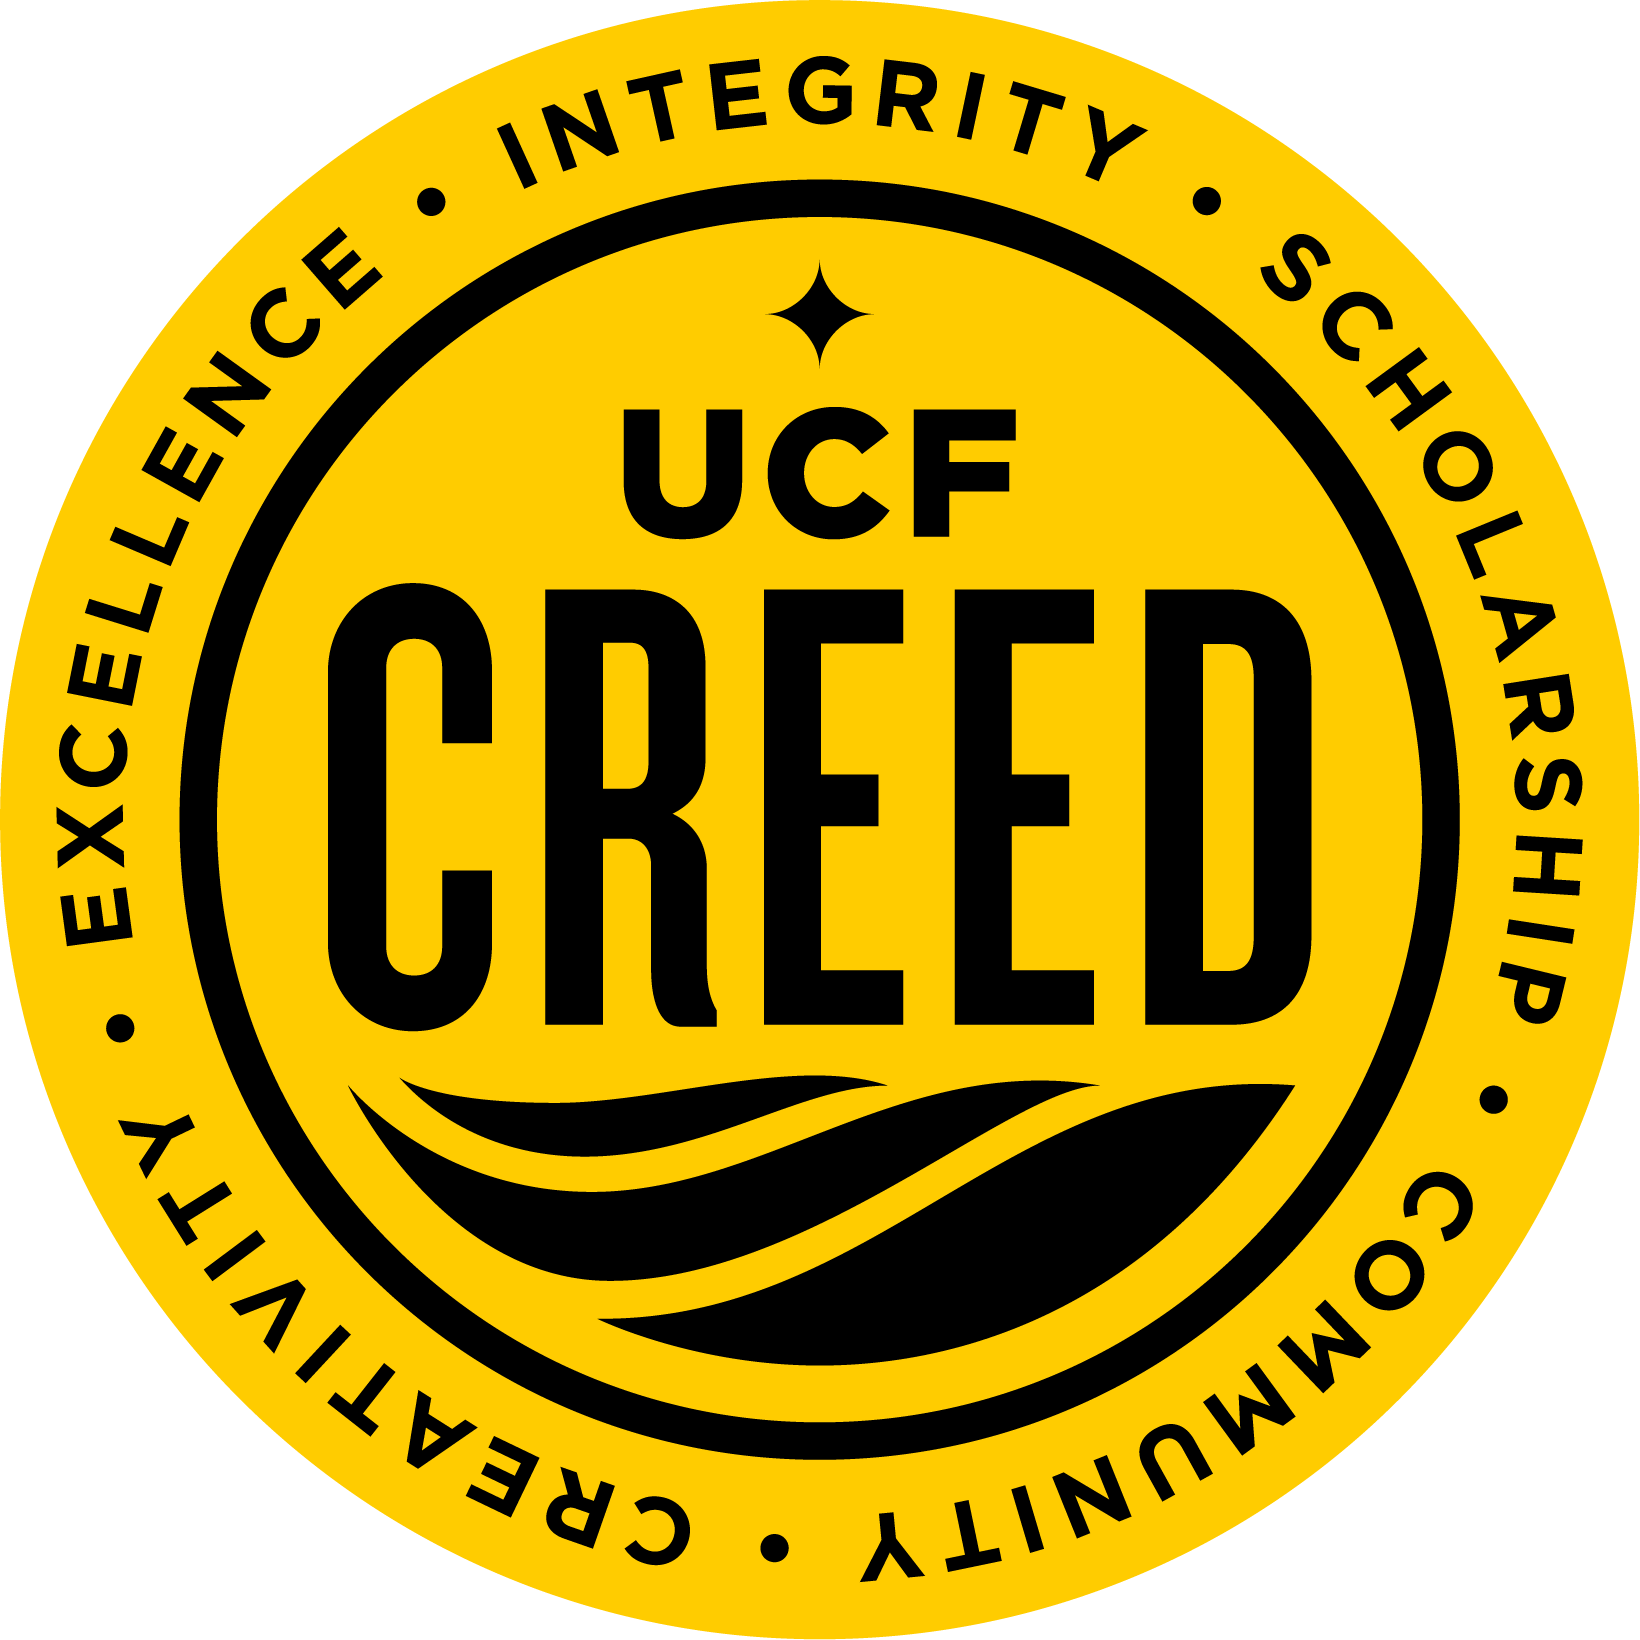 UCF Creed Logo